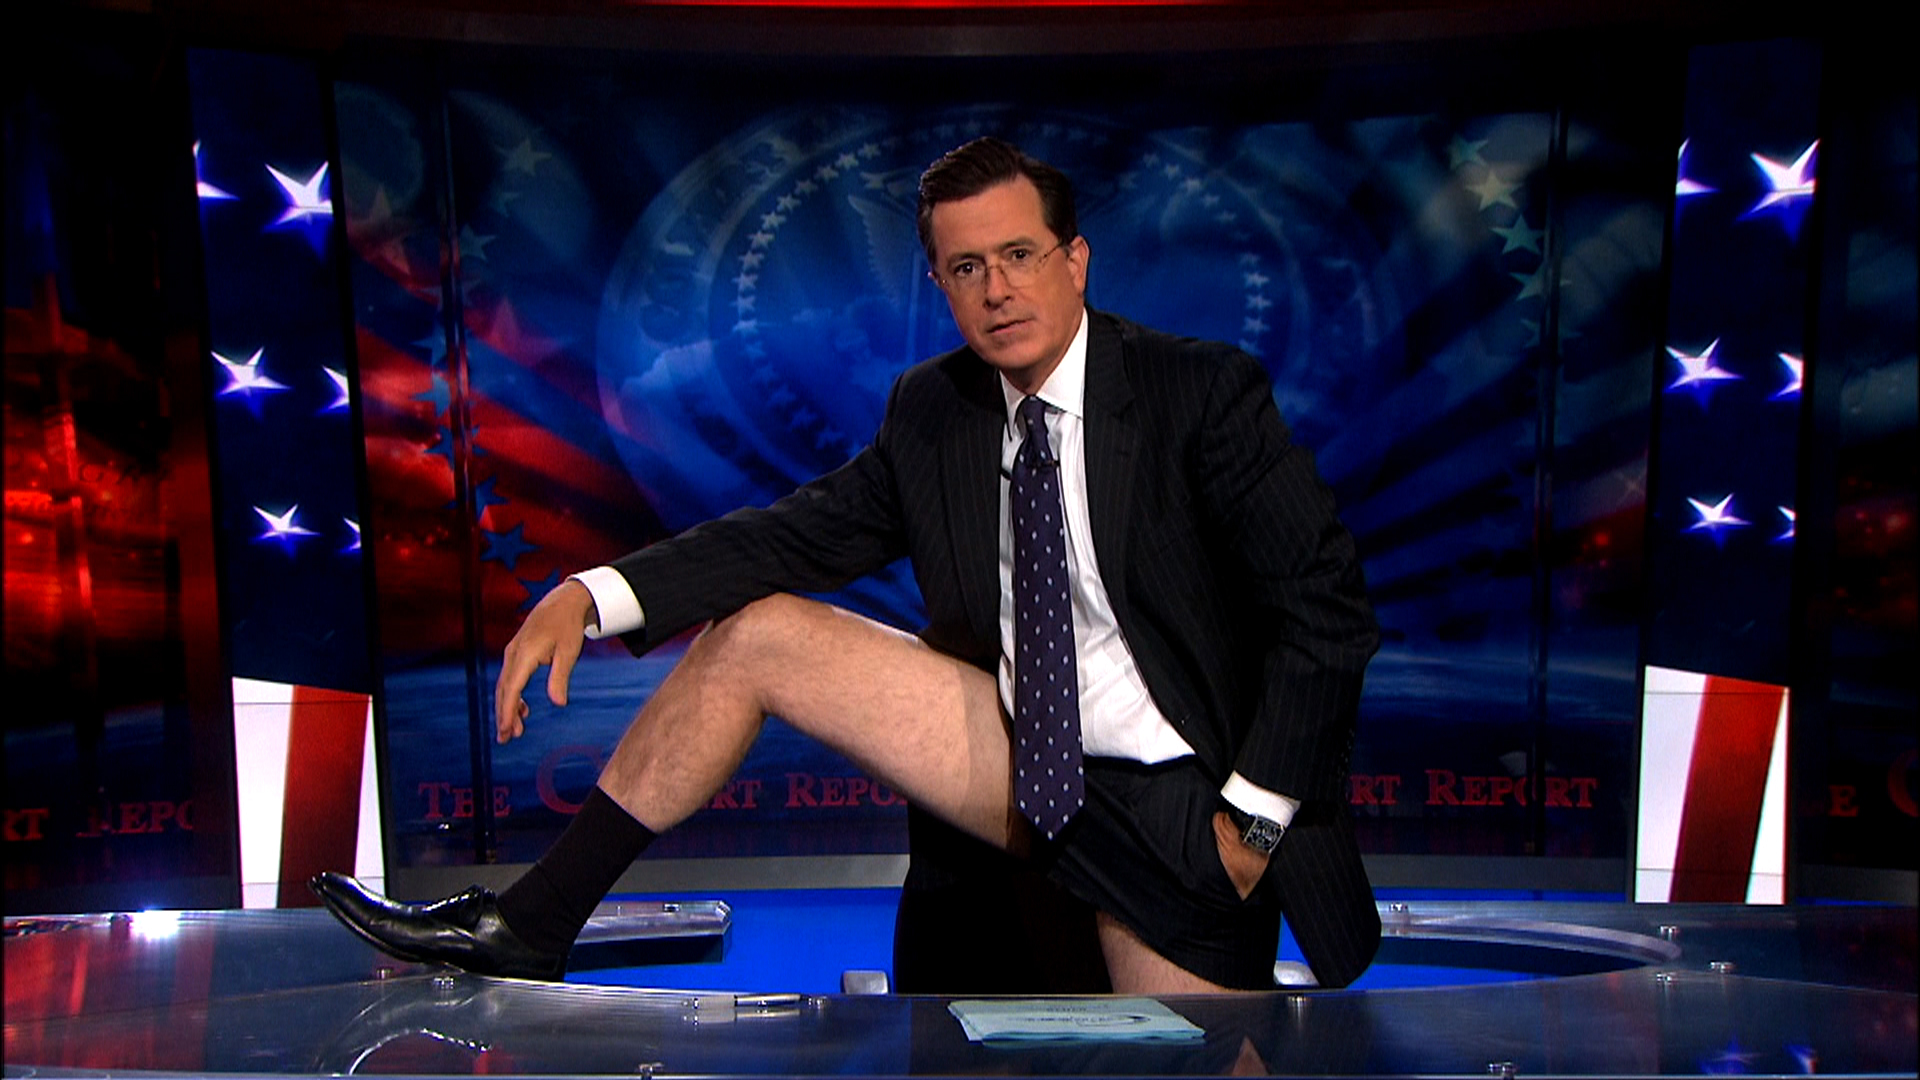 Stephen Colbert wallpaper 1920x1080 65040 1920x1080